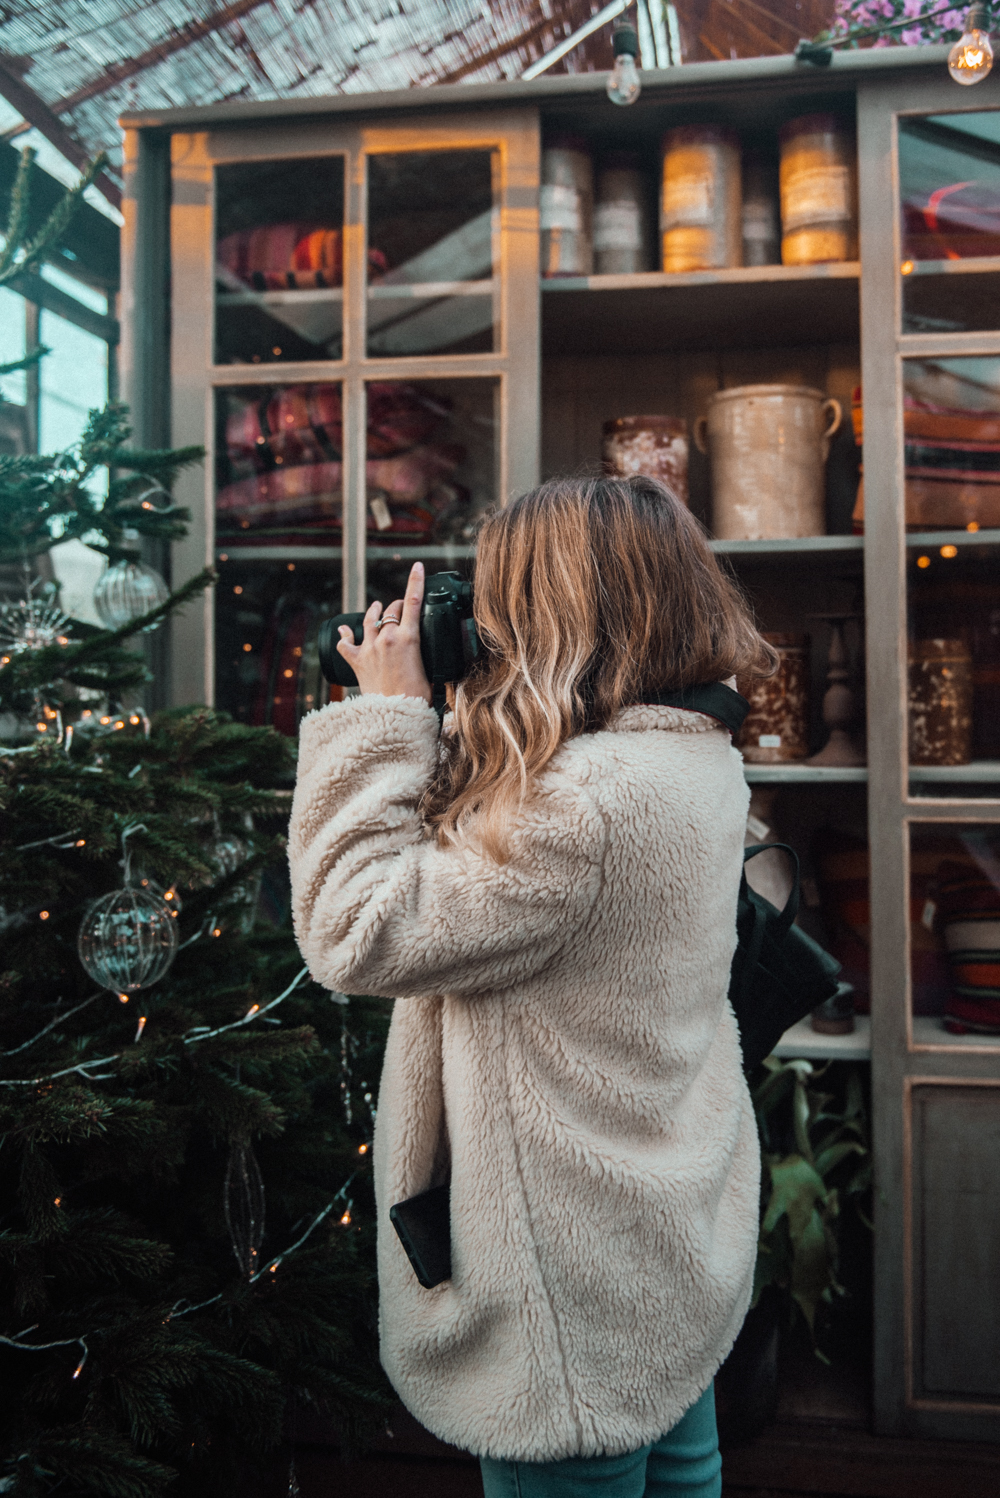 A Winter Visit To London // 12 Days of Christmas // www.oliviabossert.com // london, travel, lifestyle blog, fashion posts, uk bloggers, petersham nursery, bhuti, richmond, autumn